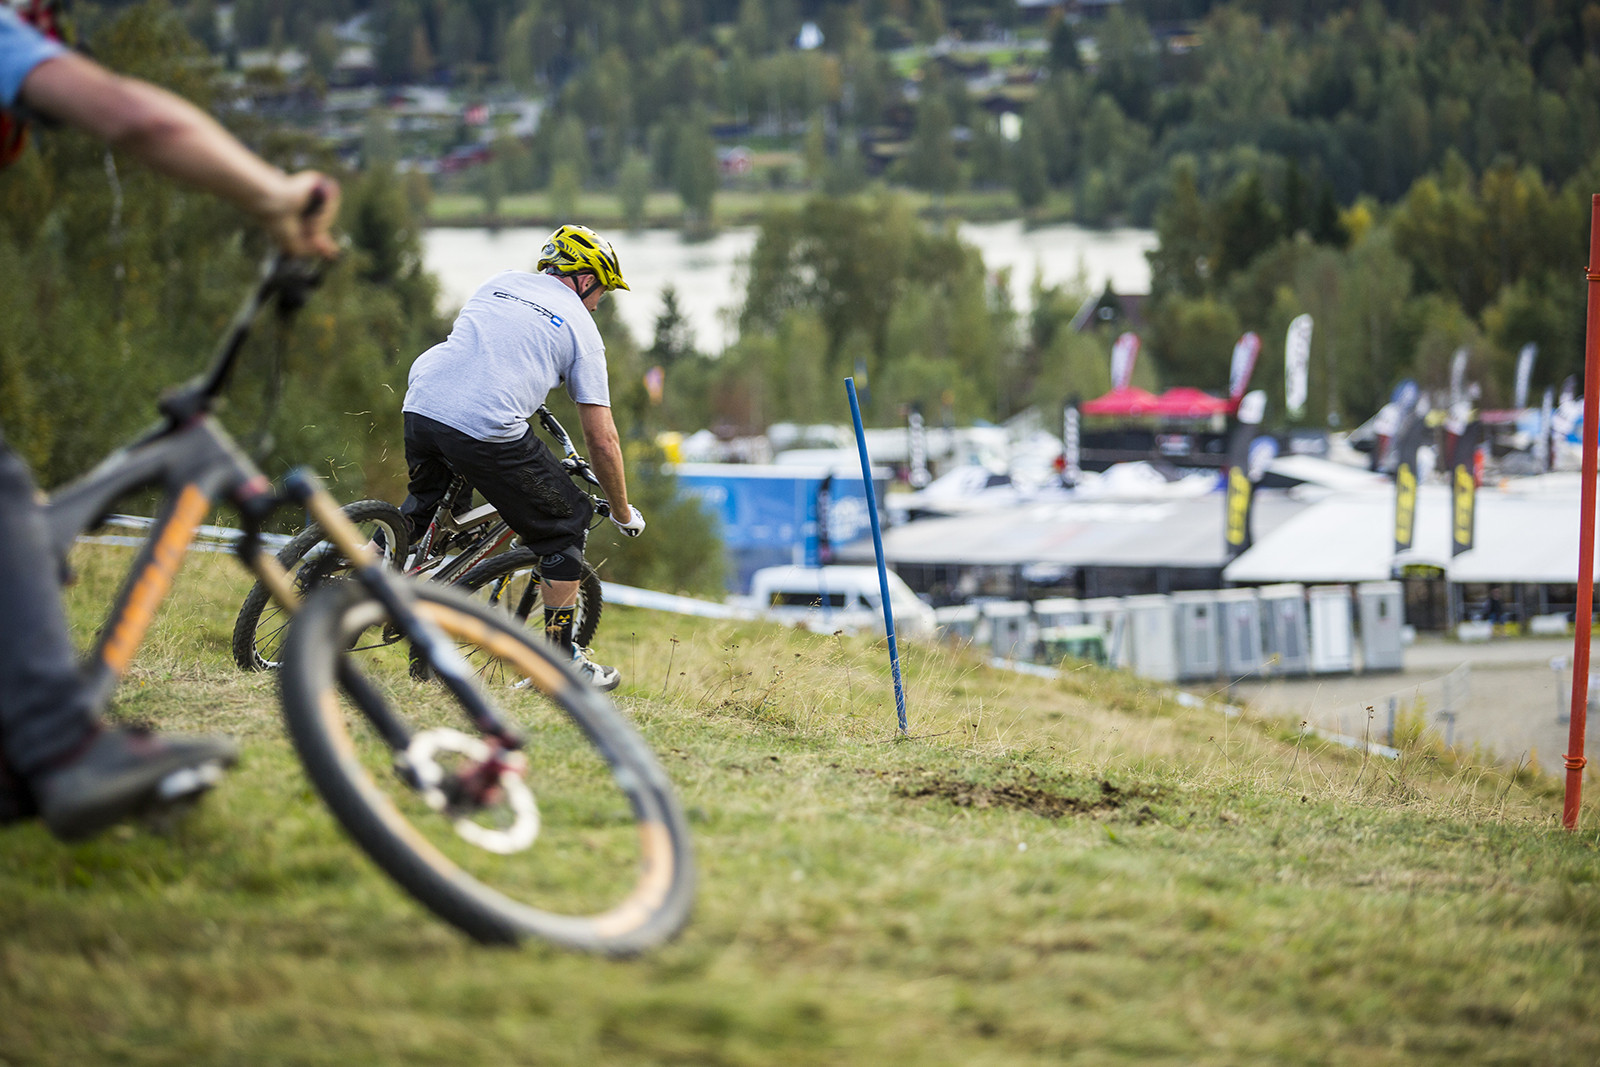 Page Puttin' Down the Hurt - Has-Beens vs. Wannabes! Industry World Champs Race at Hafjell - Mountain Biking Pictures - Vital MTB